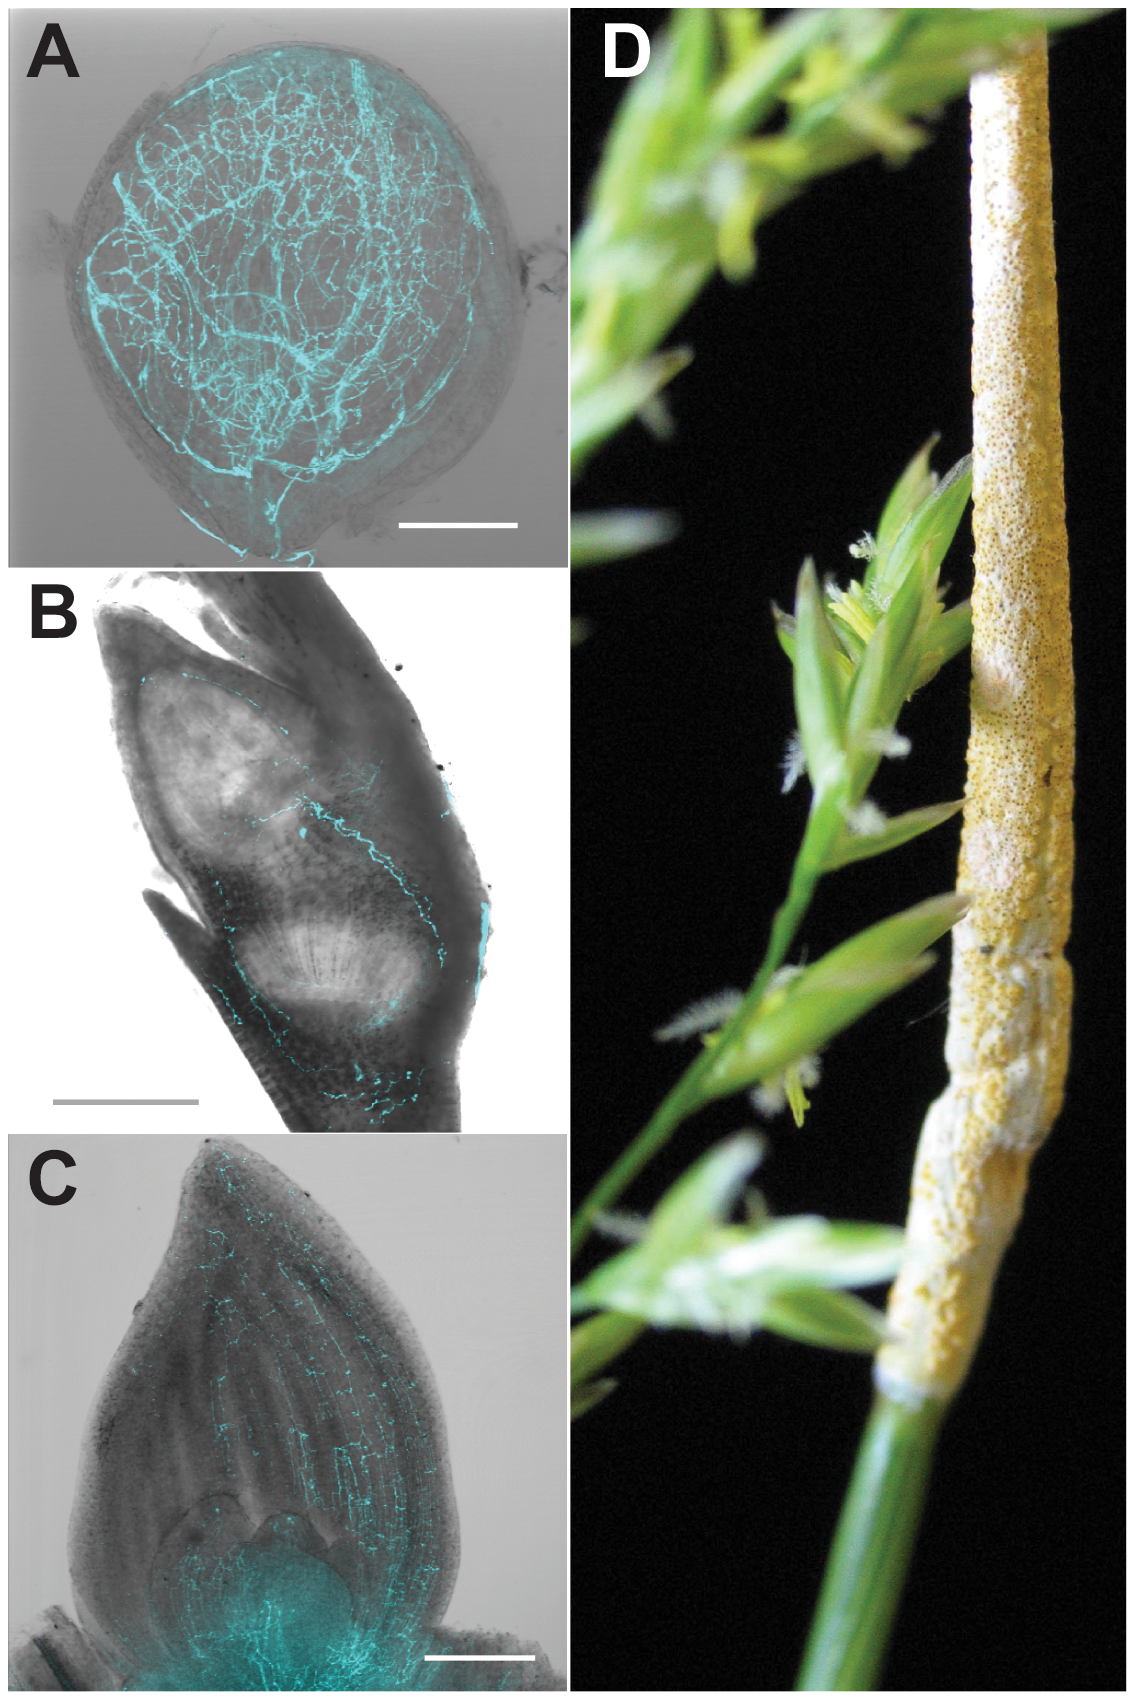 Symbiosis of meadow fescue with <i>Epichloë festucae</i>, a heritable symbiont.